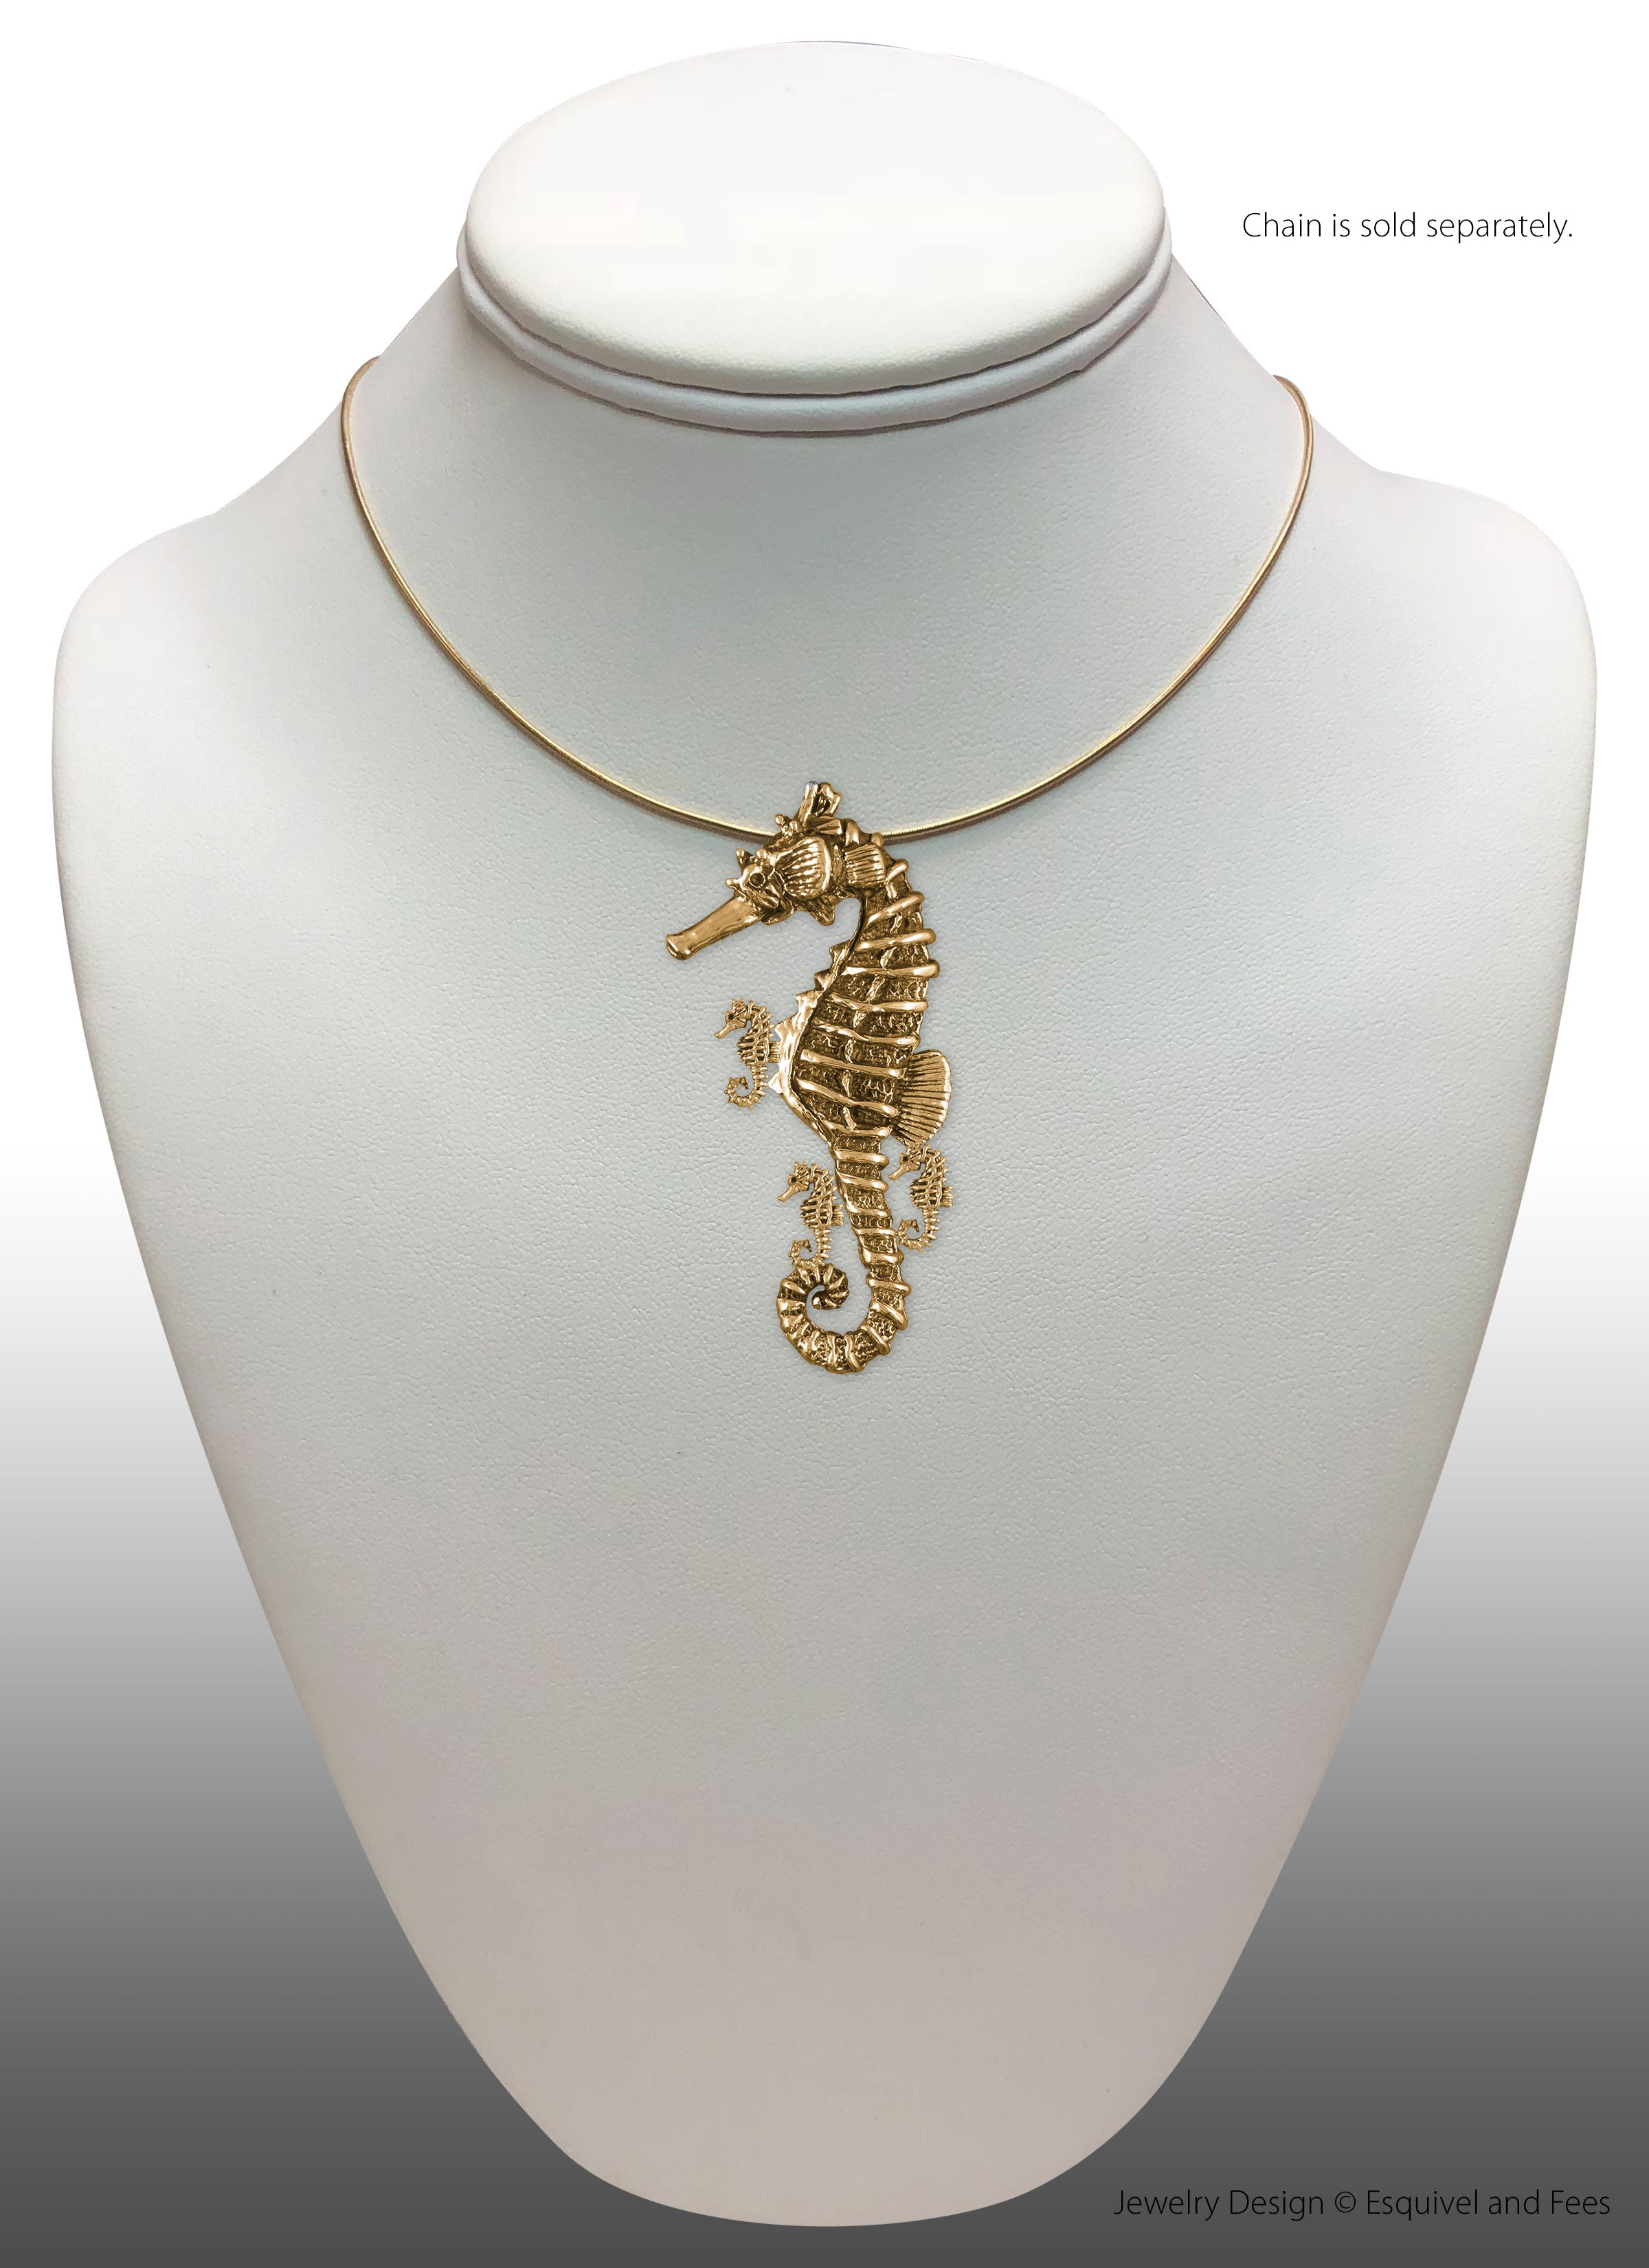 Seahorse Sea Horse And Fry Pendant 14k Gold Esquivel And Fees Handmade Charm And Jewelry Designs